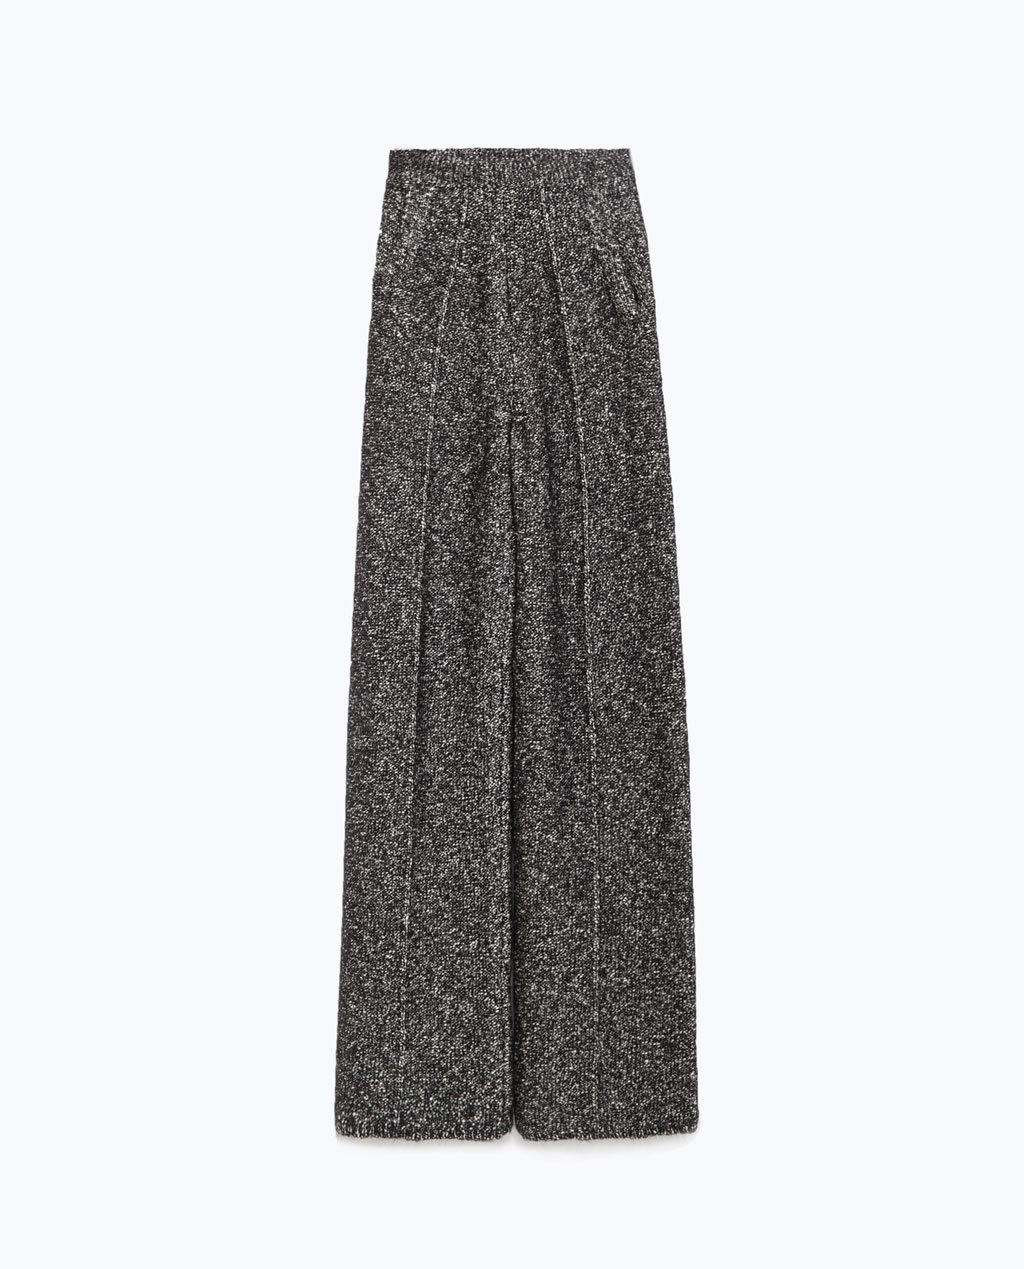 Wide Trousers - length: standard; waist: high rise; pocket detail: pockets at the sides; secondary colour: white; predominant colour: black; occasions: evening, creative work; fibres: cotton - mix; hip detail: front pleats at hip level; texture group: cotton feel fabrics; fit: wide leg; pattern type: knitted - other; pattern: patterned/print; style: standard; pattern size: standard (bottom); season: a/w 2015; wardrobe: highlight